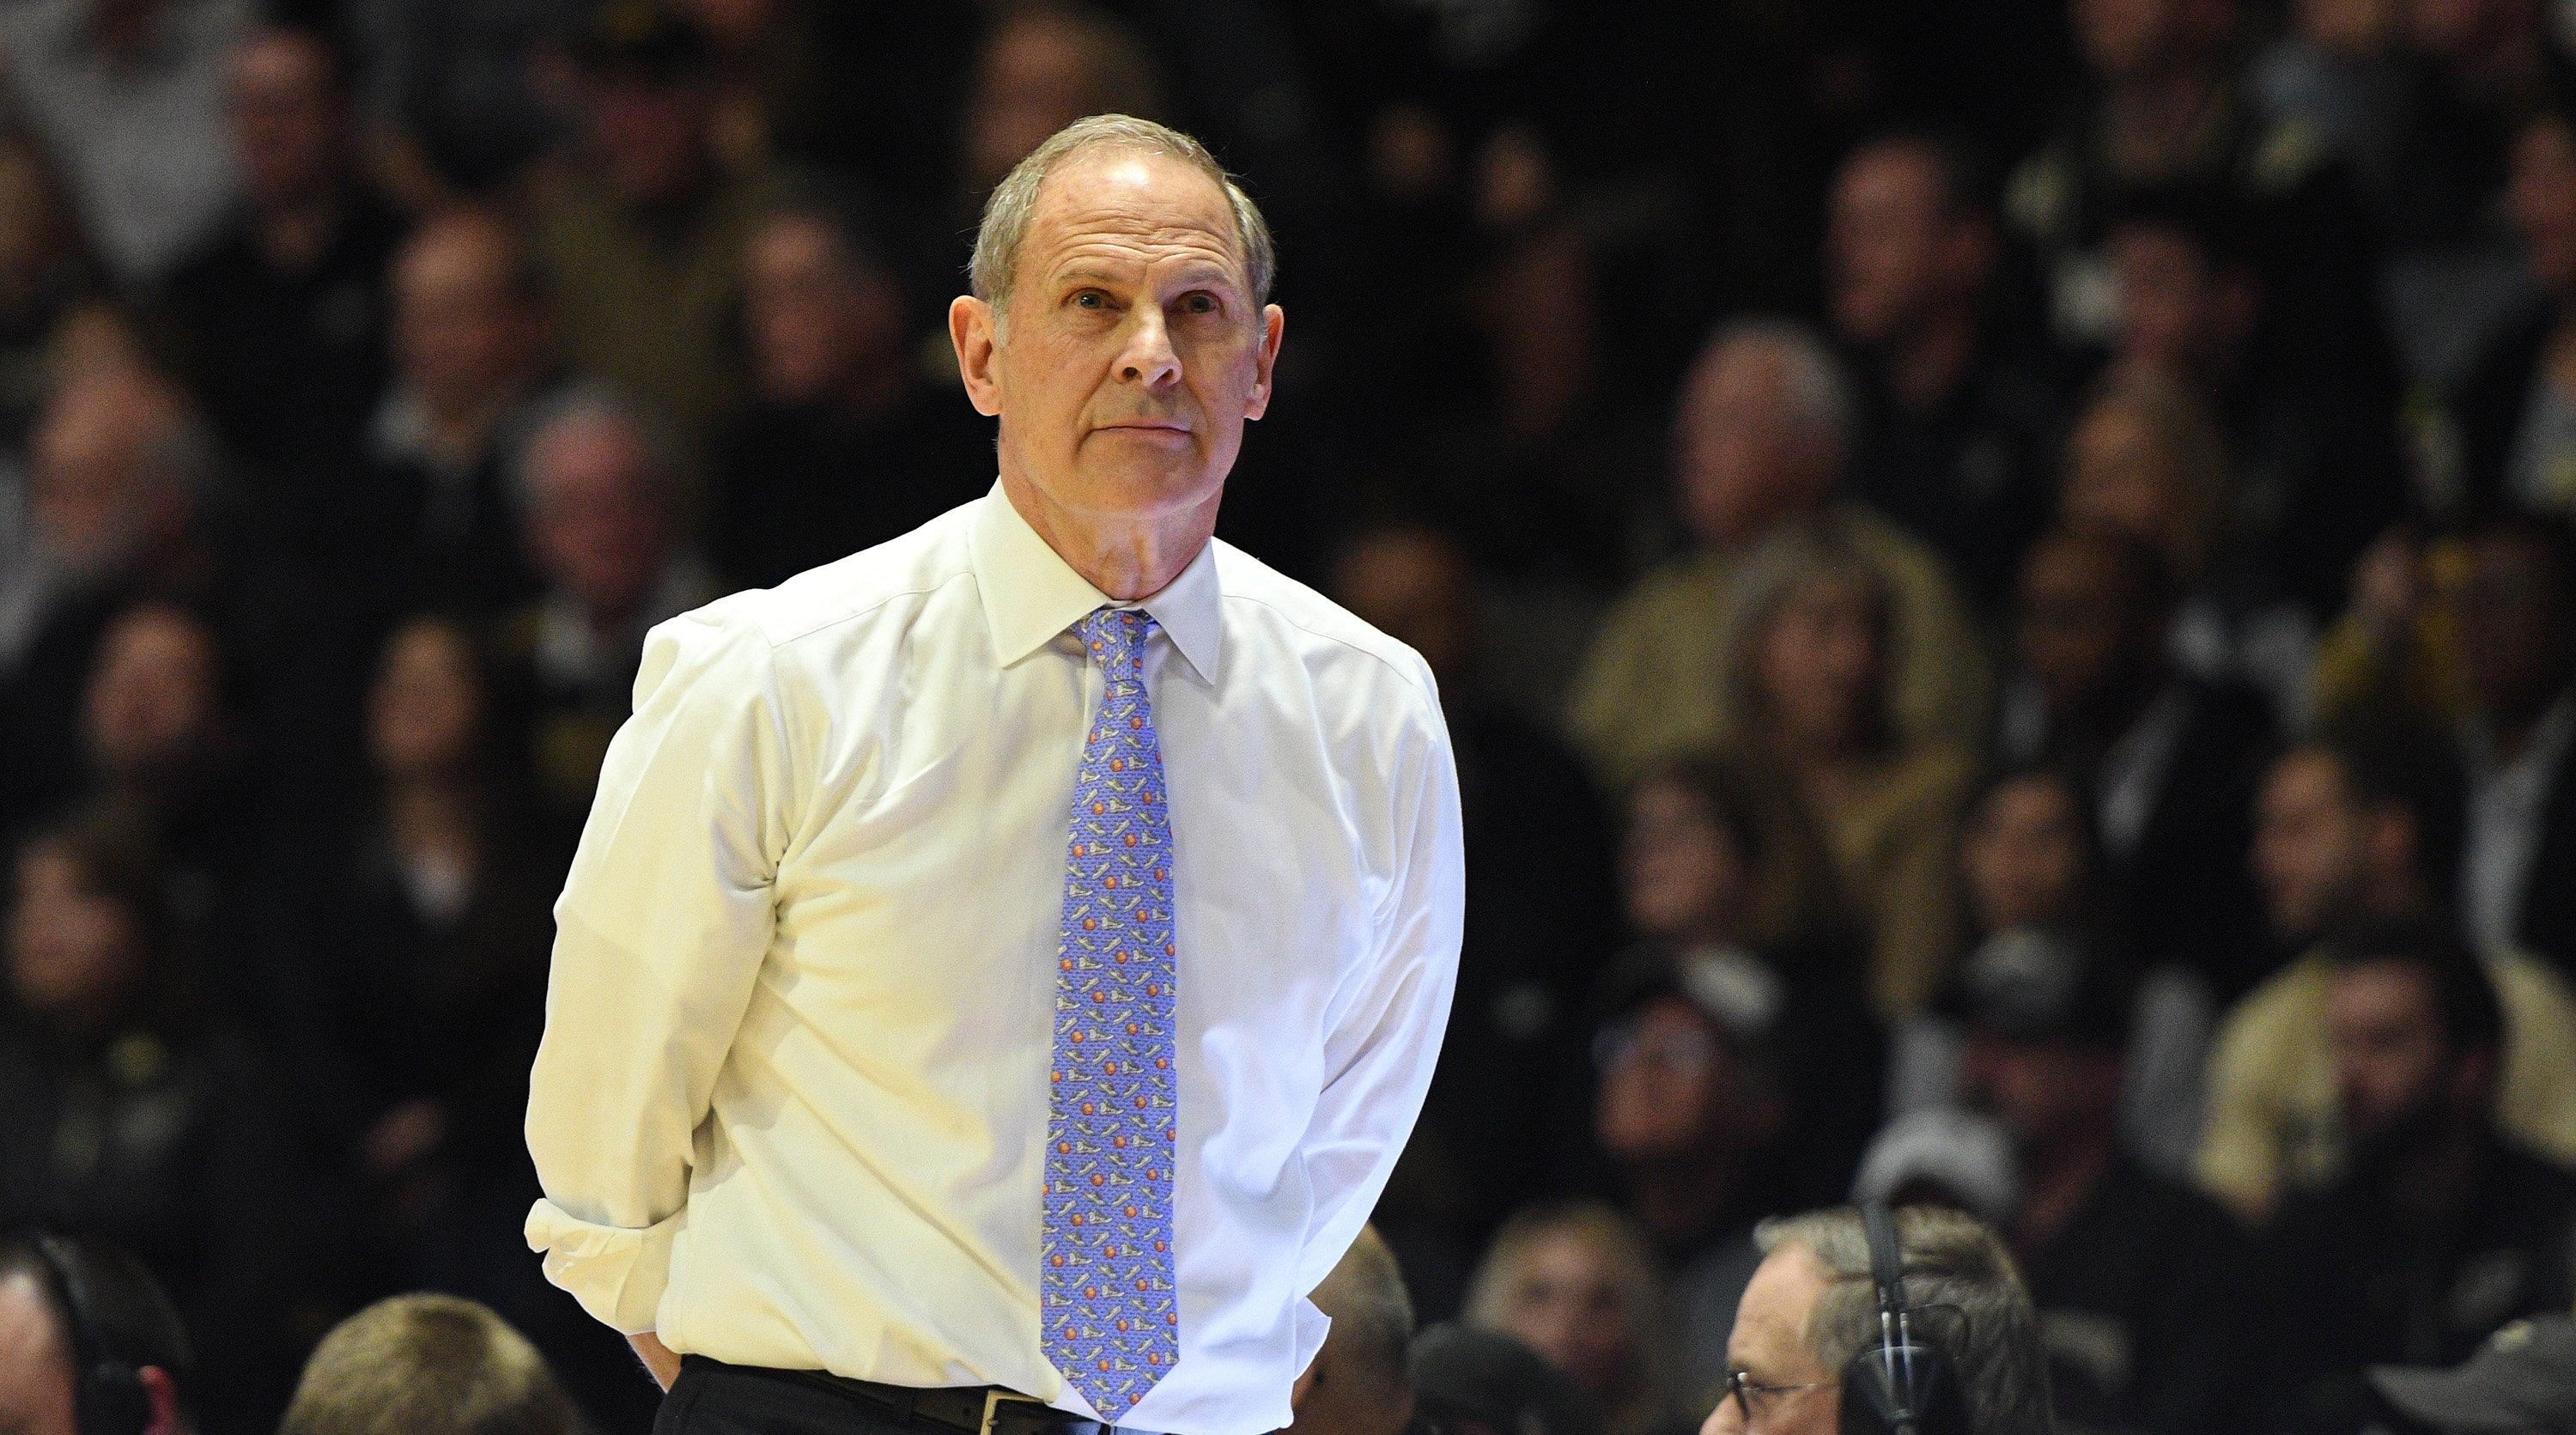 John-beilein-staying-michigan-pistons-rumors